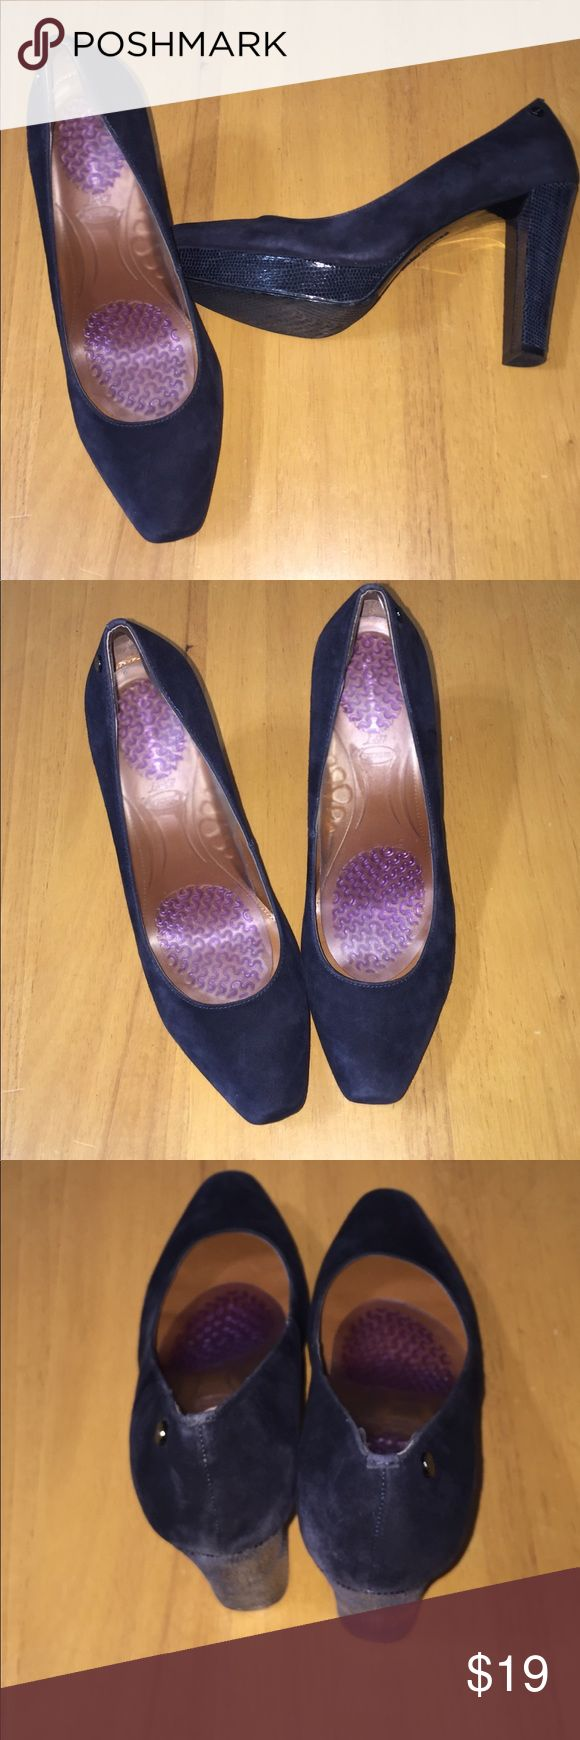 Calvin Klein navy 4 1/4 inch heels 4 inch navy suede heels with 1 inch front platform. Snake skin print heel Size 9m. Very comfortable. Good condition. CK symbol embossed on back of shoe. Calvin Klein Shoes Heels